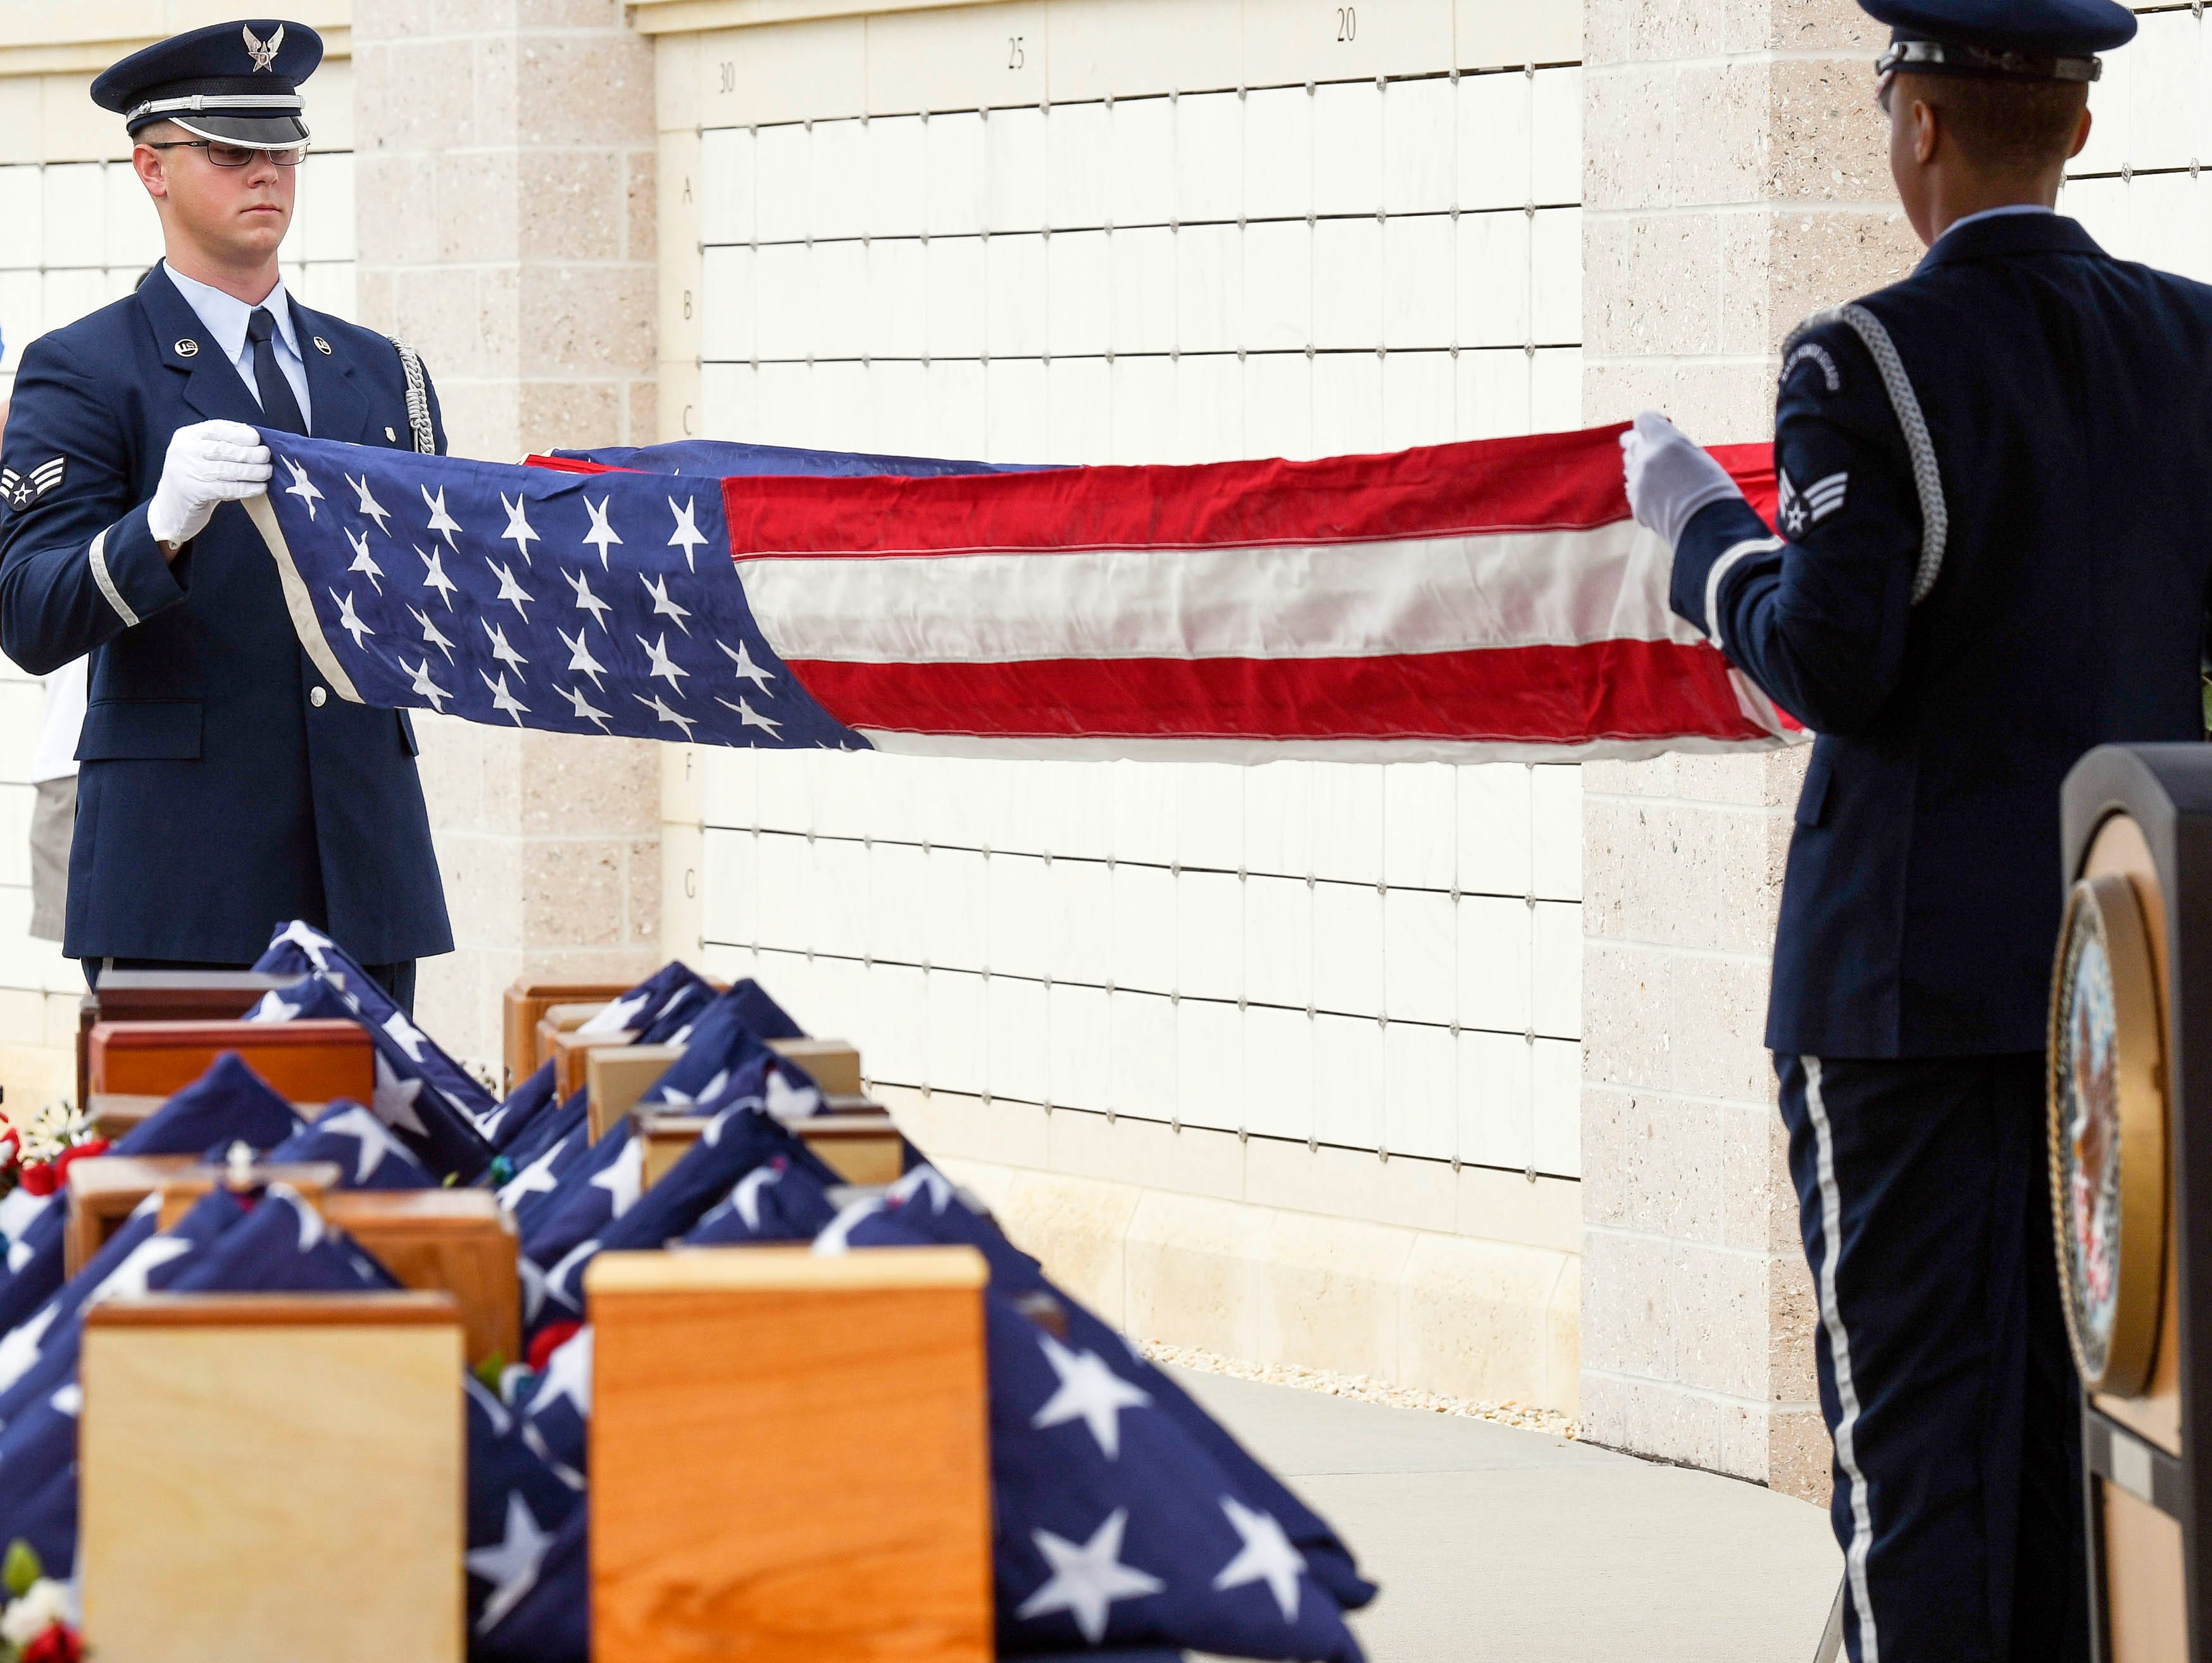 The ashes of 19 veterans and six spouses are laid to rest in a ceremony Saturday lat Cape Canaveral National Cemetery. The Missing in America Project heads up the effort to locate and inter the unclaimed cremains of veterans throughout the country.